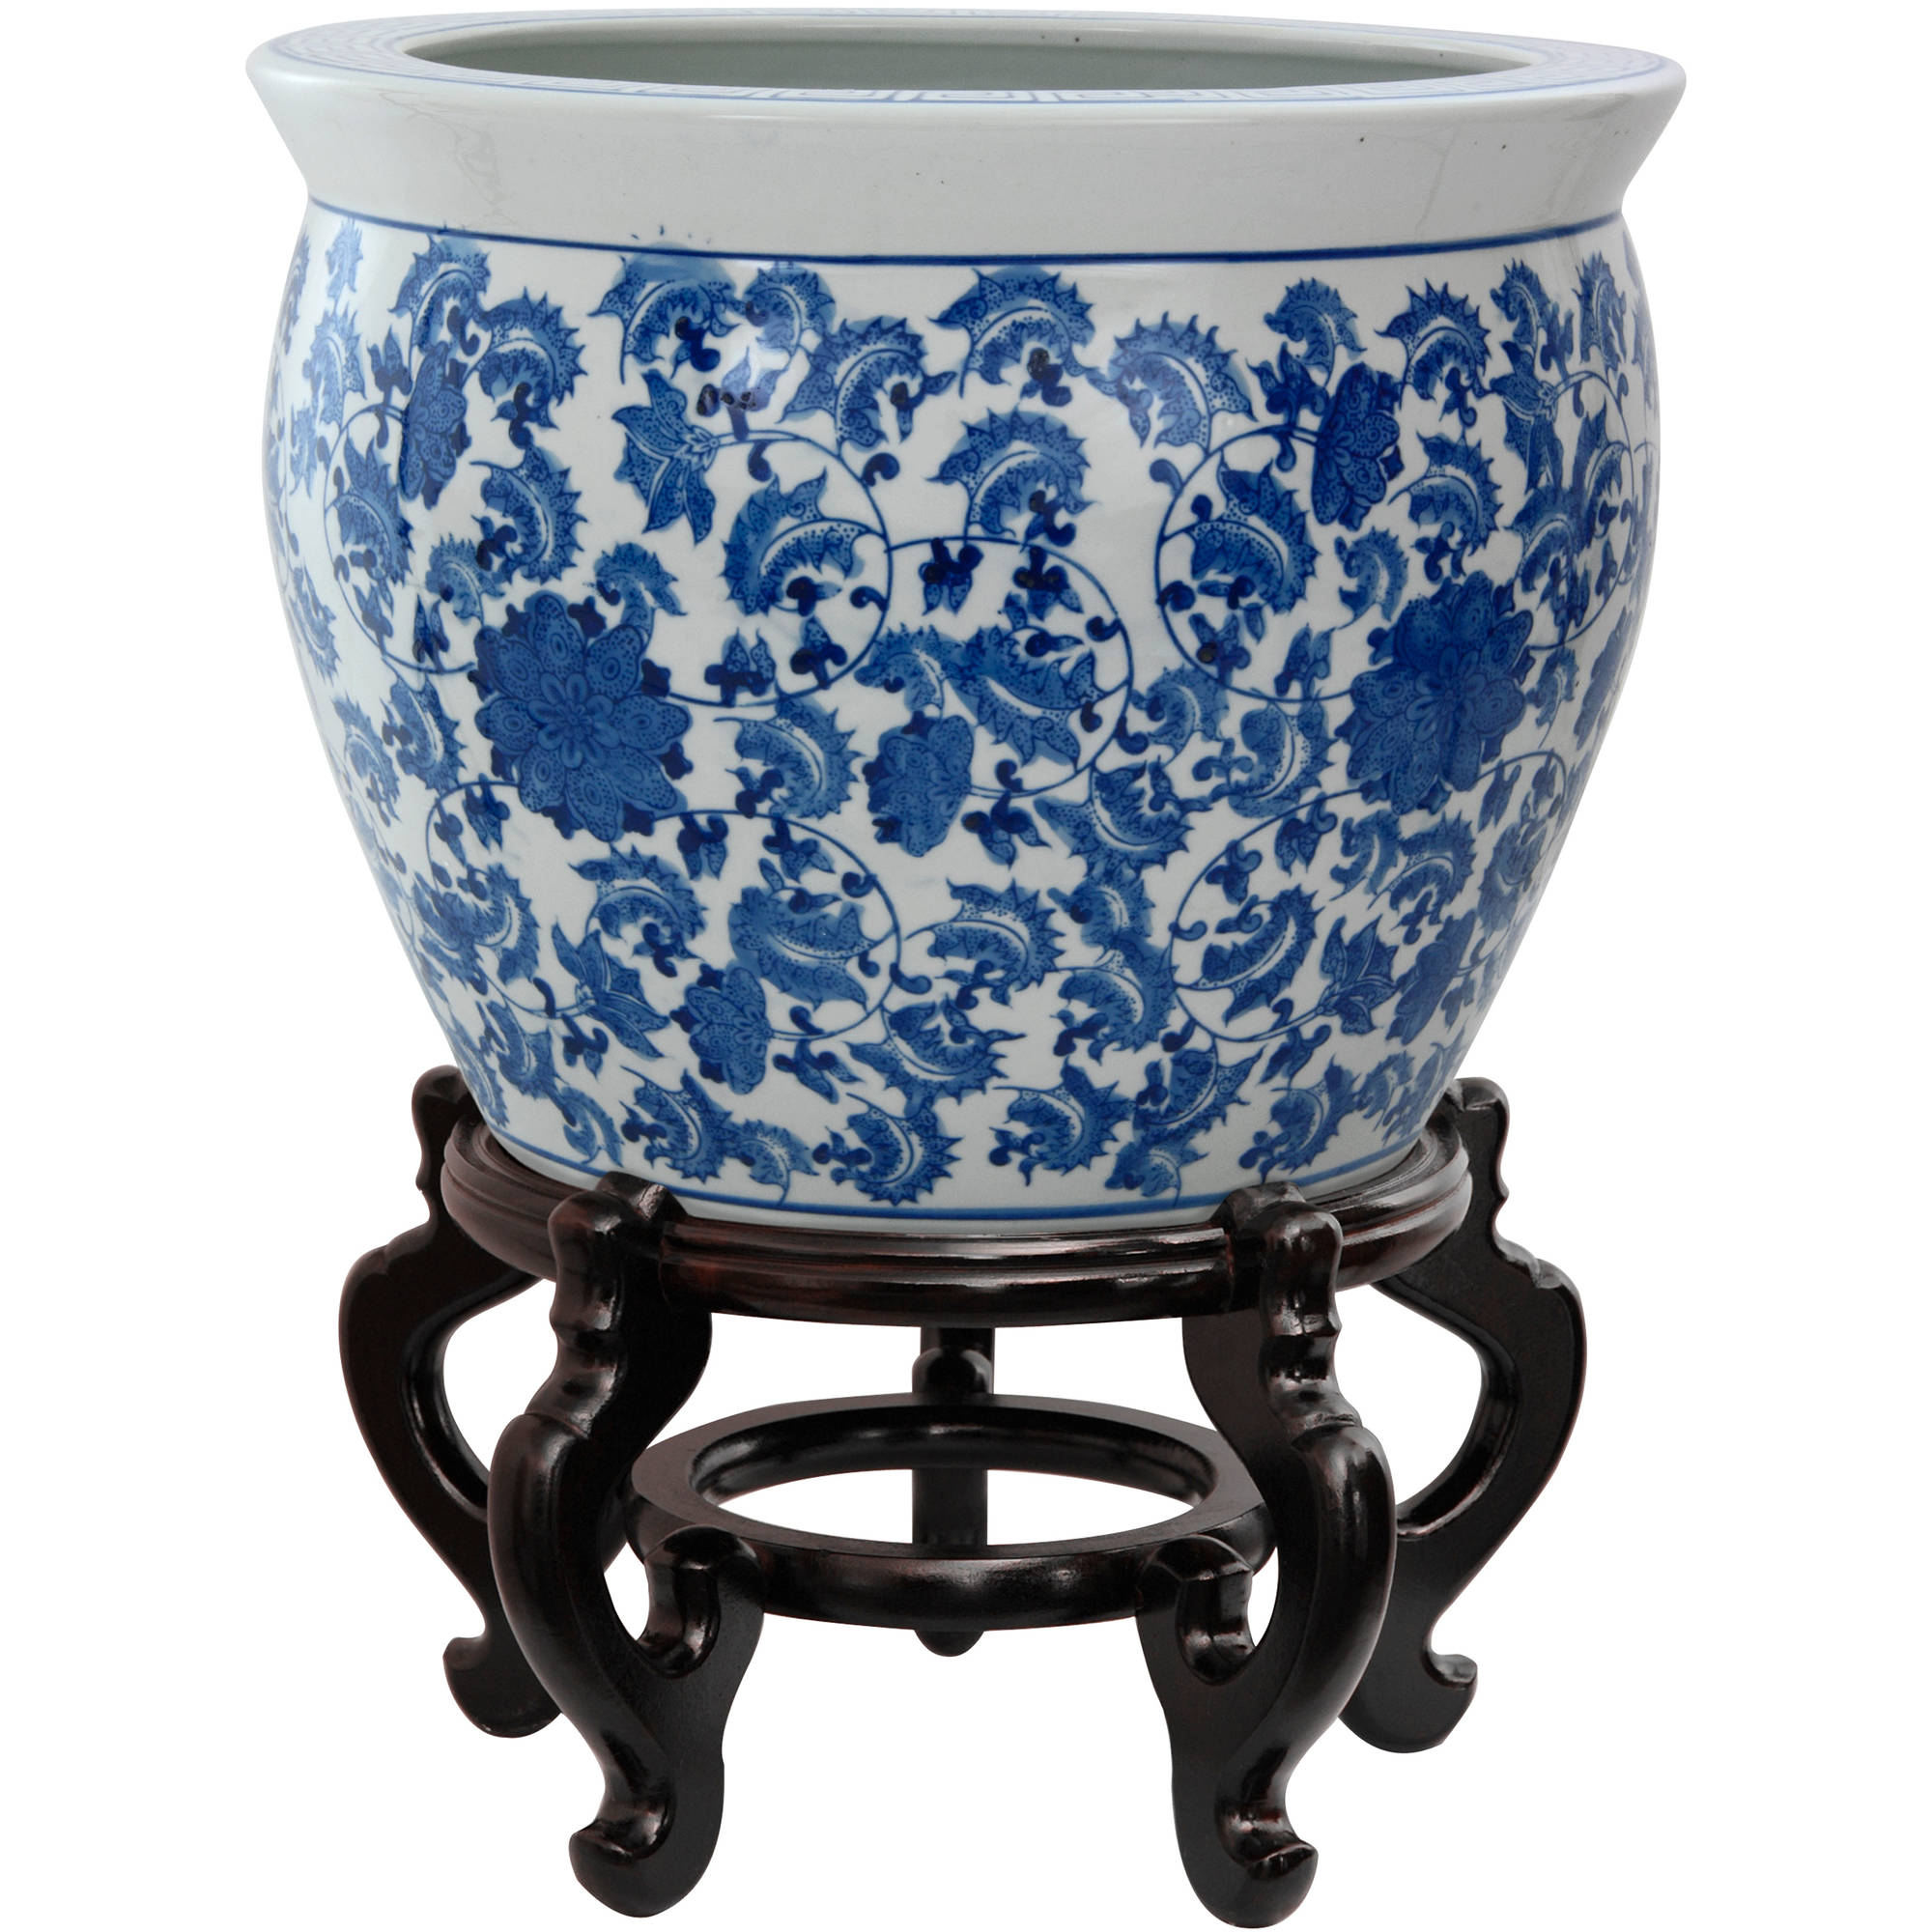 "14"" Floral Blue & White Porcelain Fishbowl"